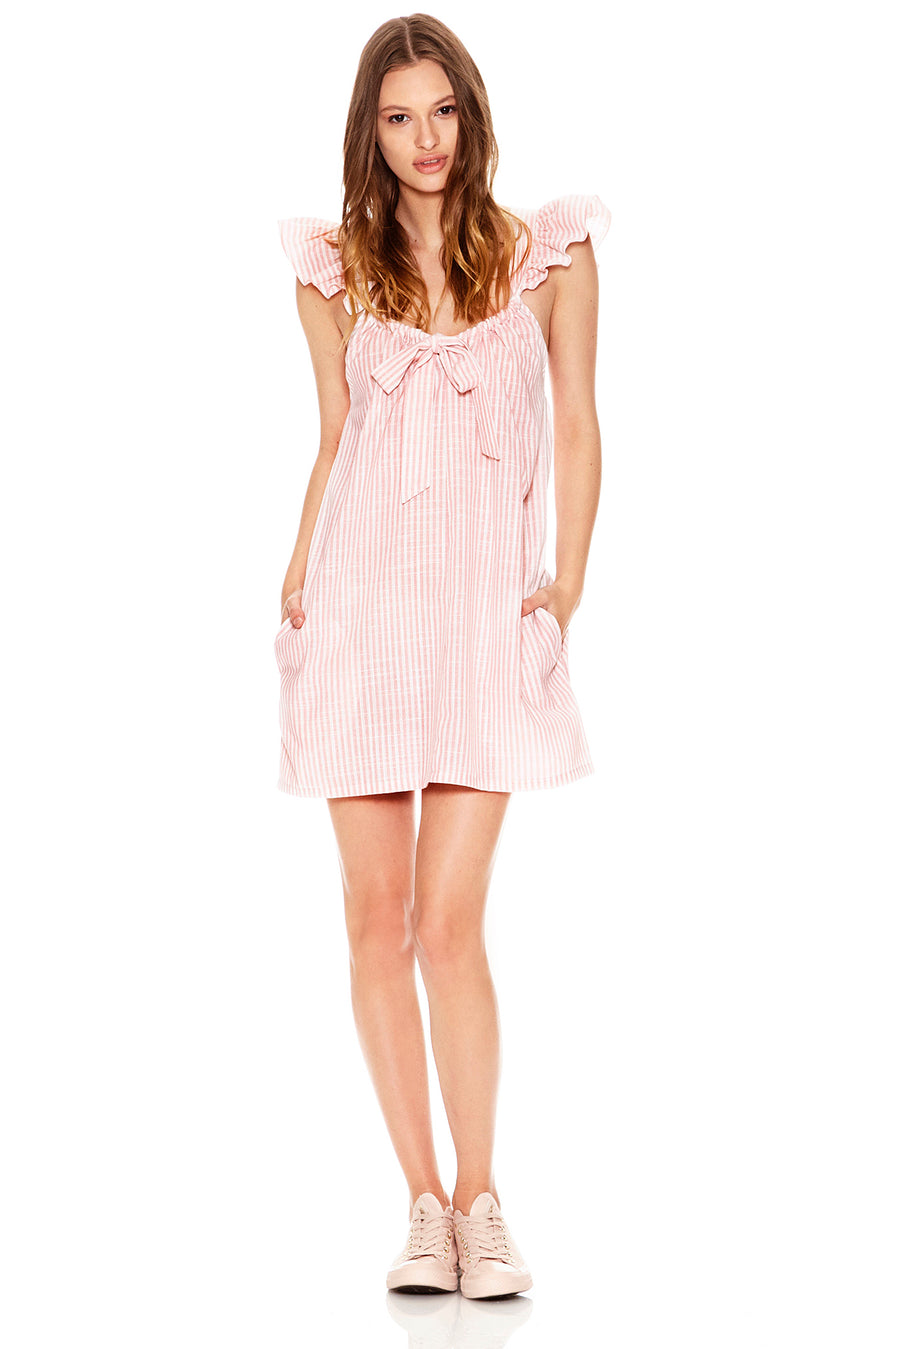 Evelyn Dress - Pink/White